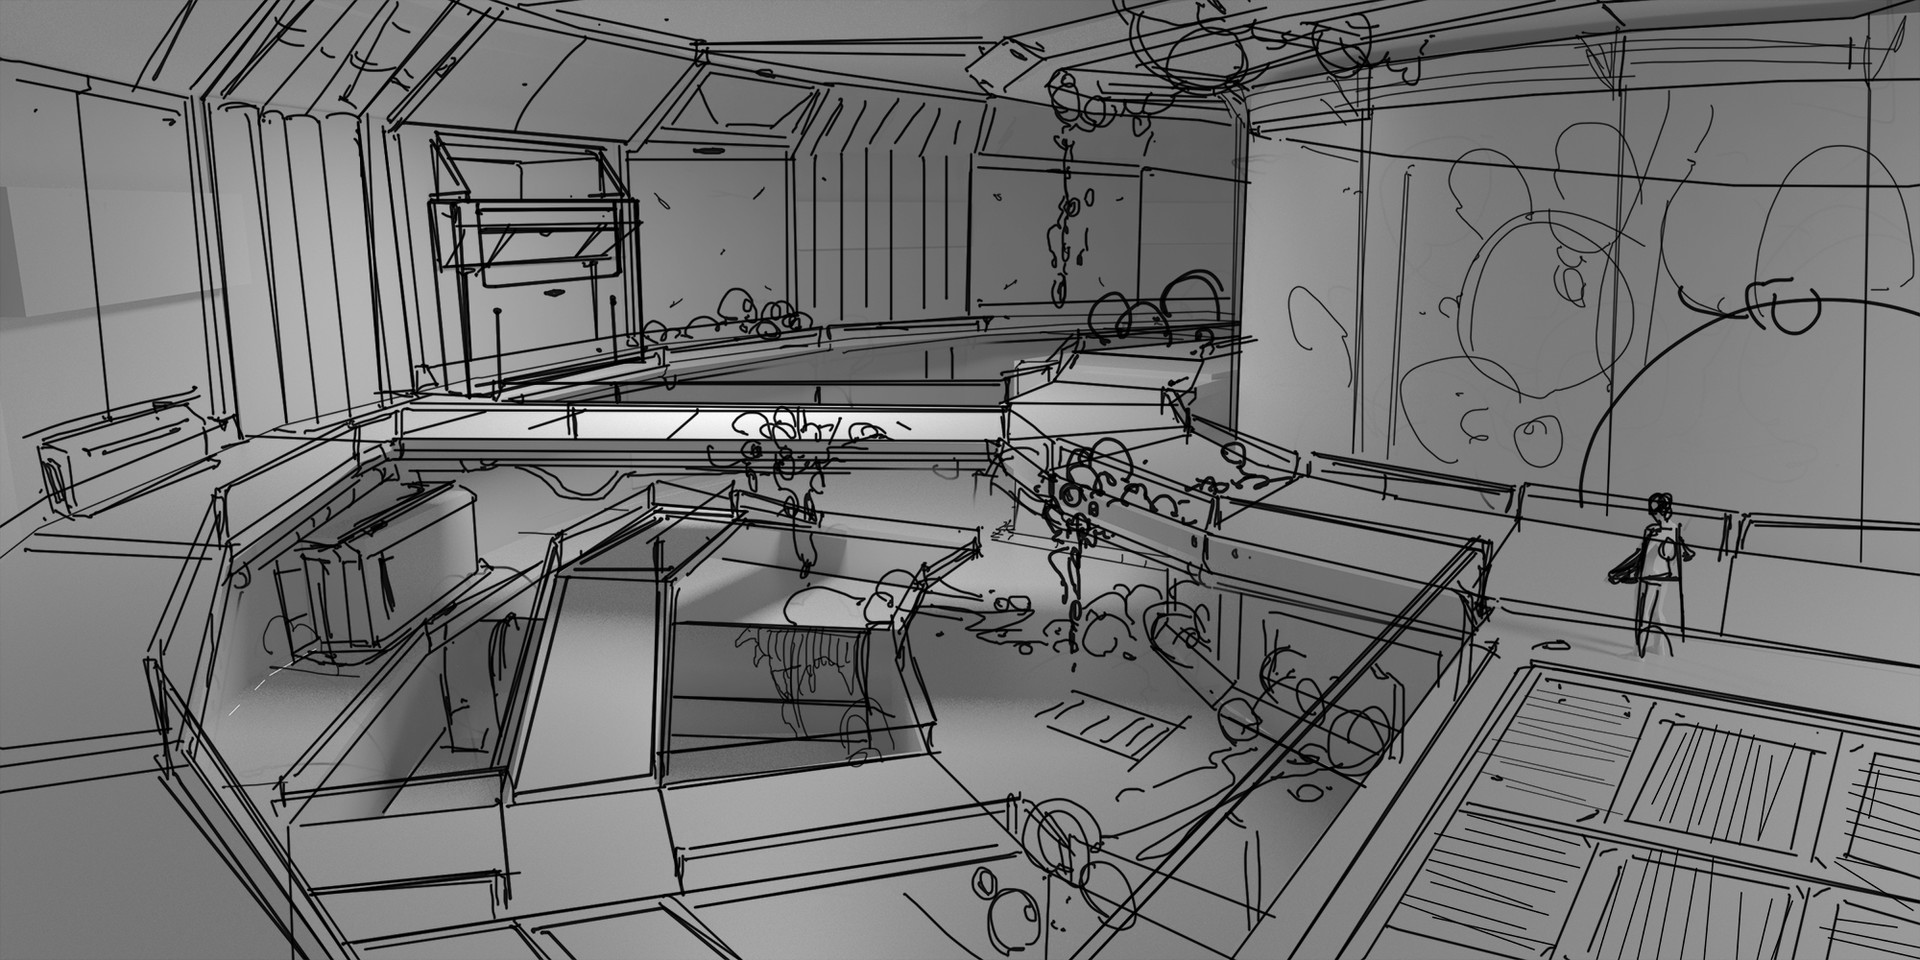 interior 1st sketch on top of rough 3d